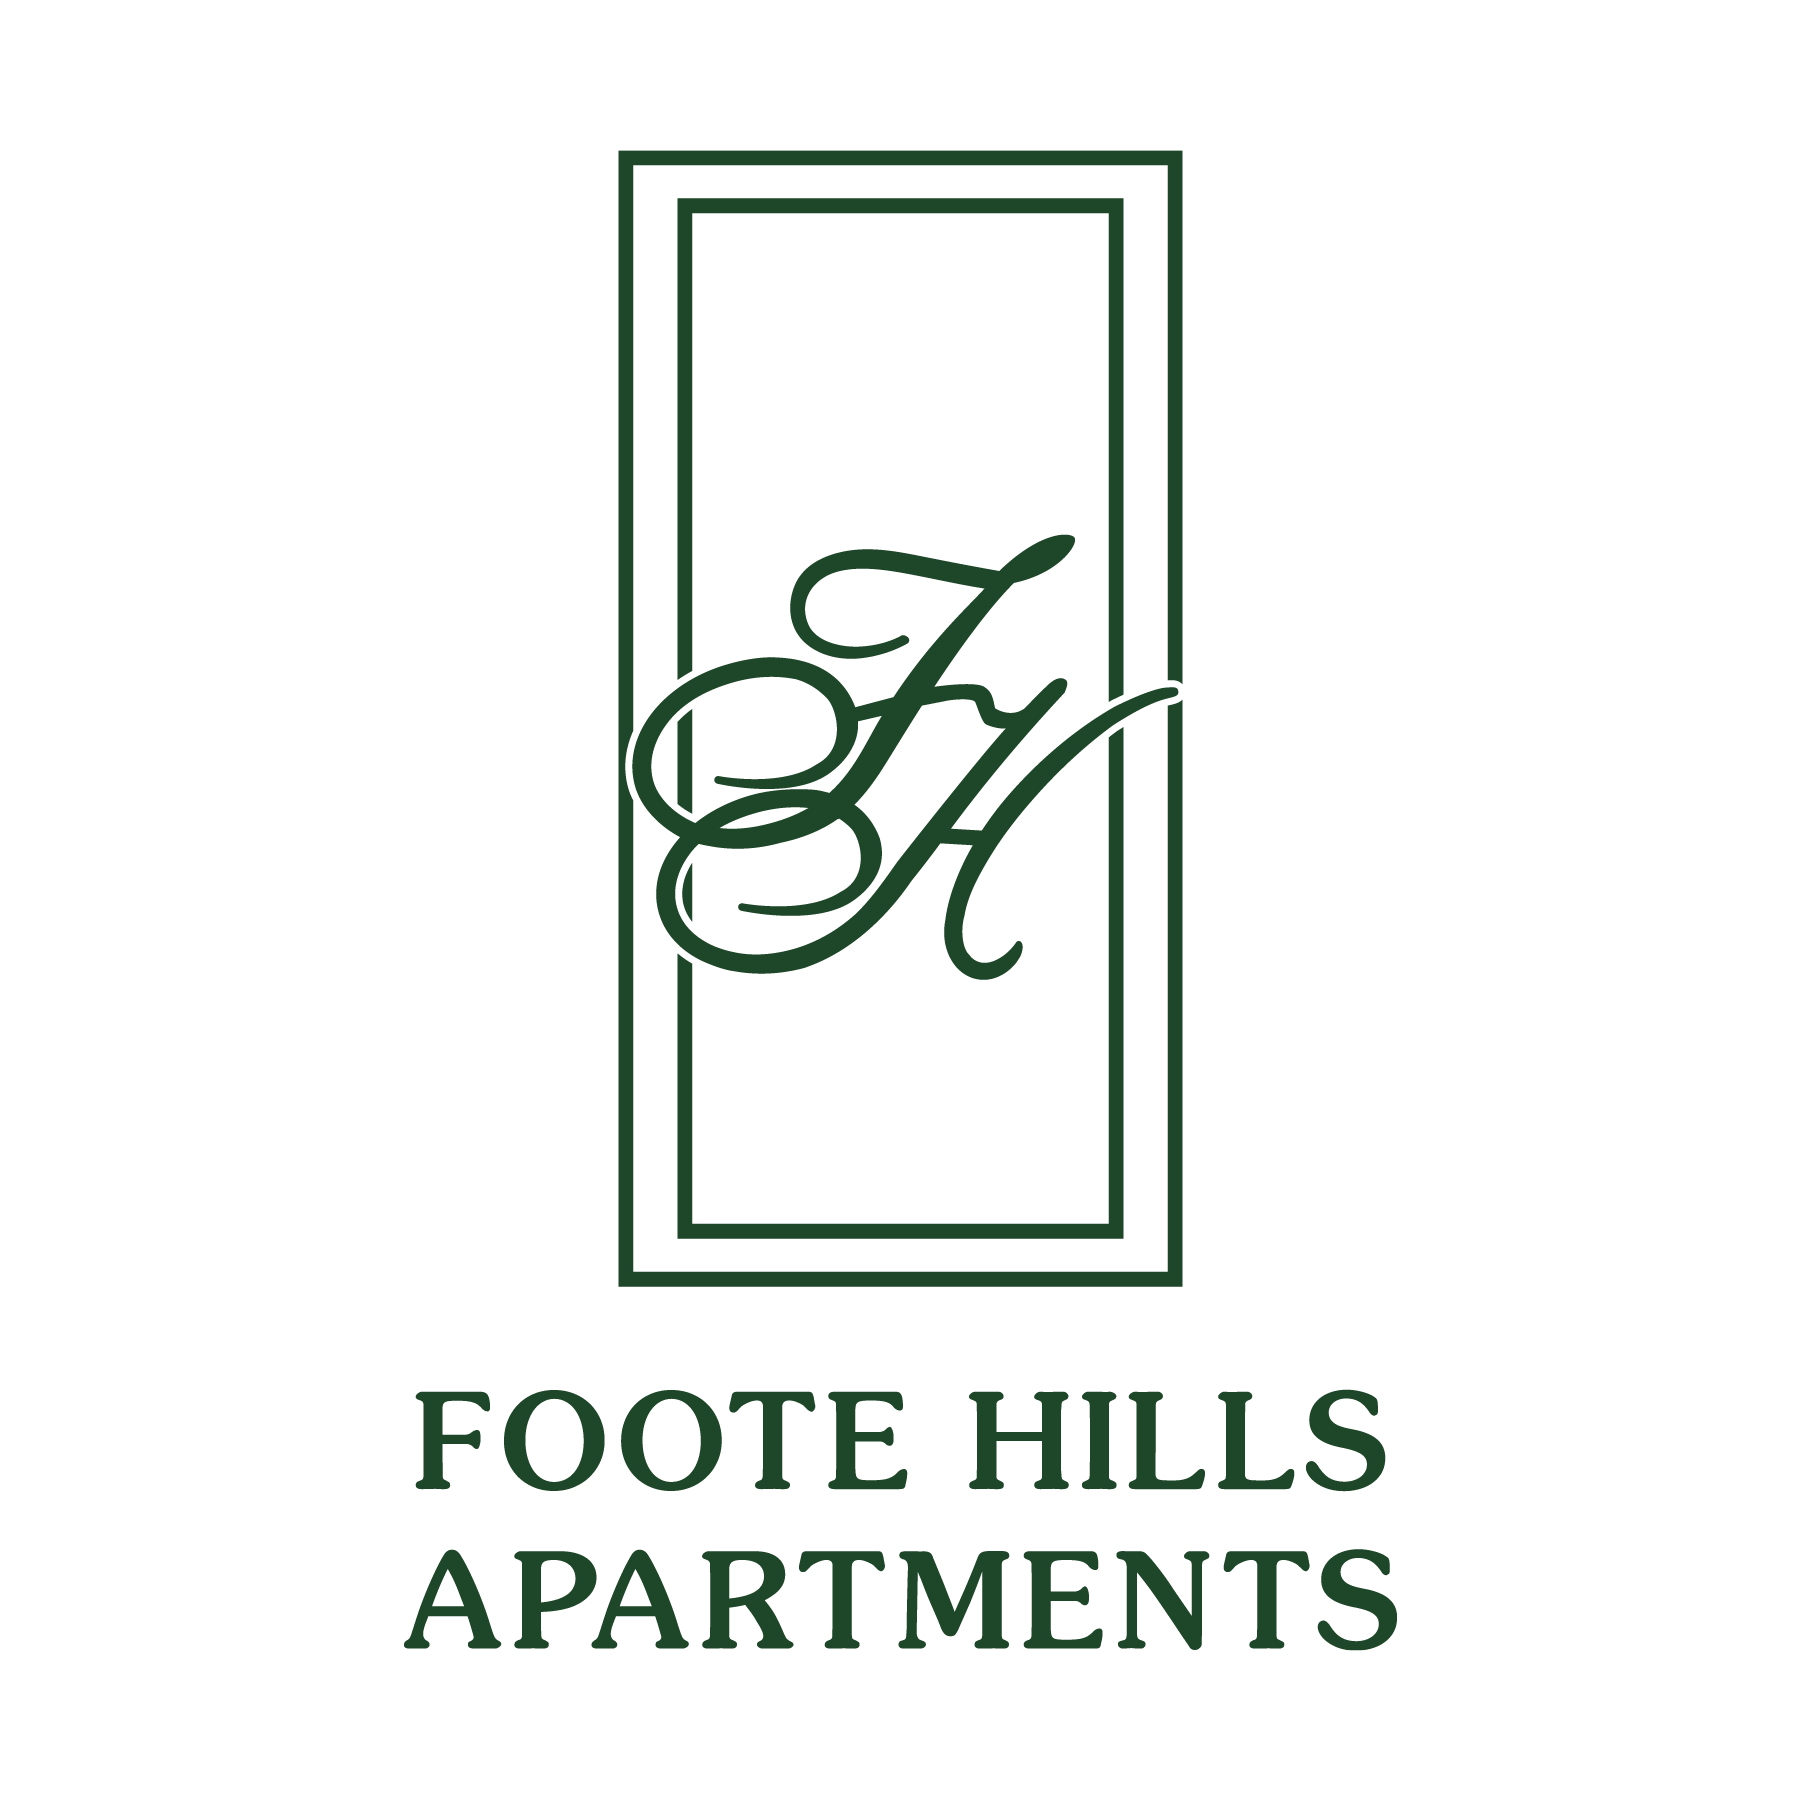 The Foote Hills Apartments